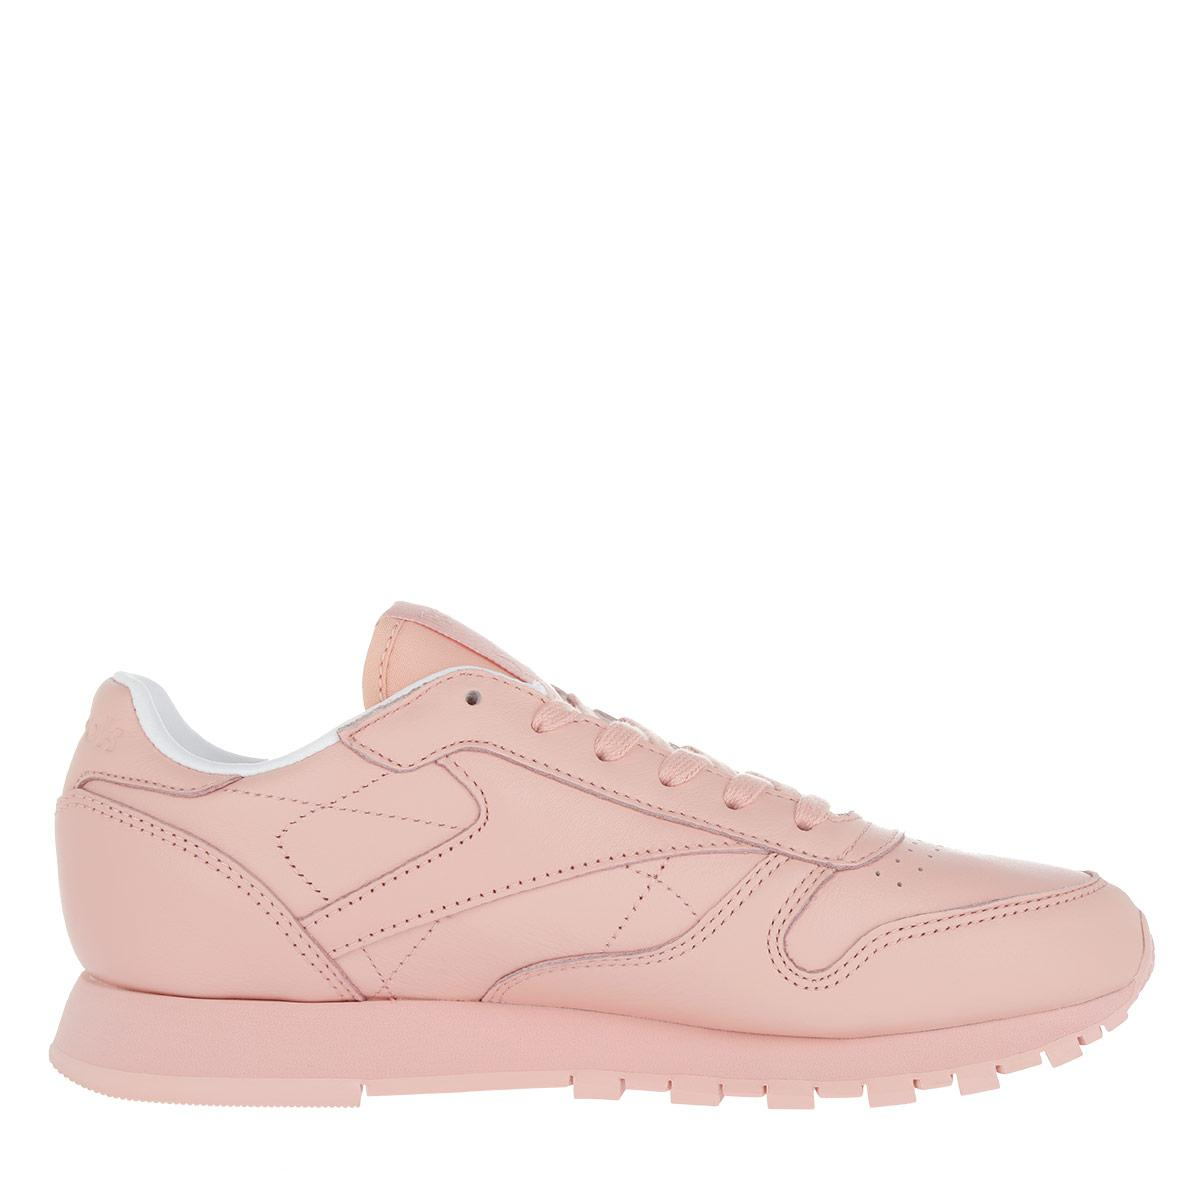 Reebok Classic Leather Pastels Sneaker Patina Pink / White